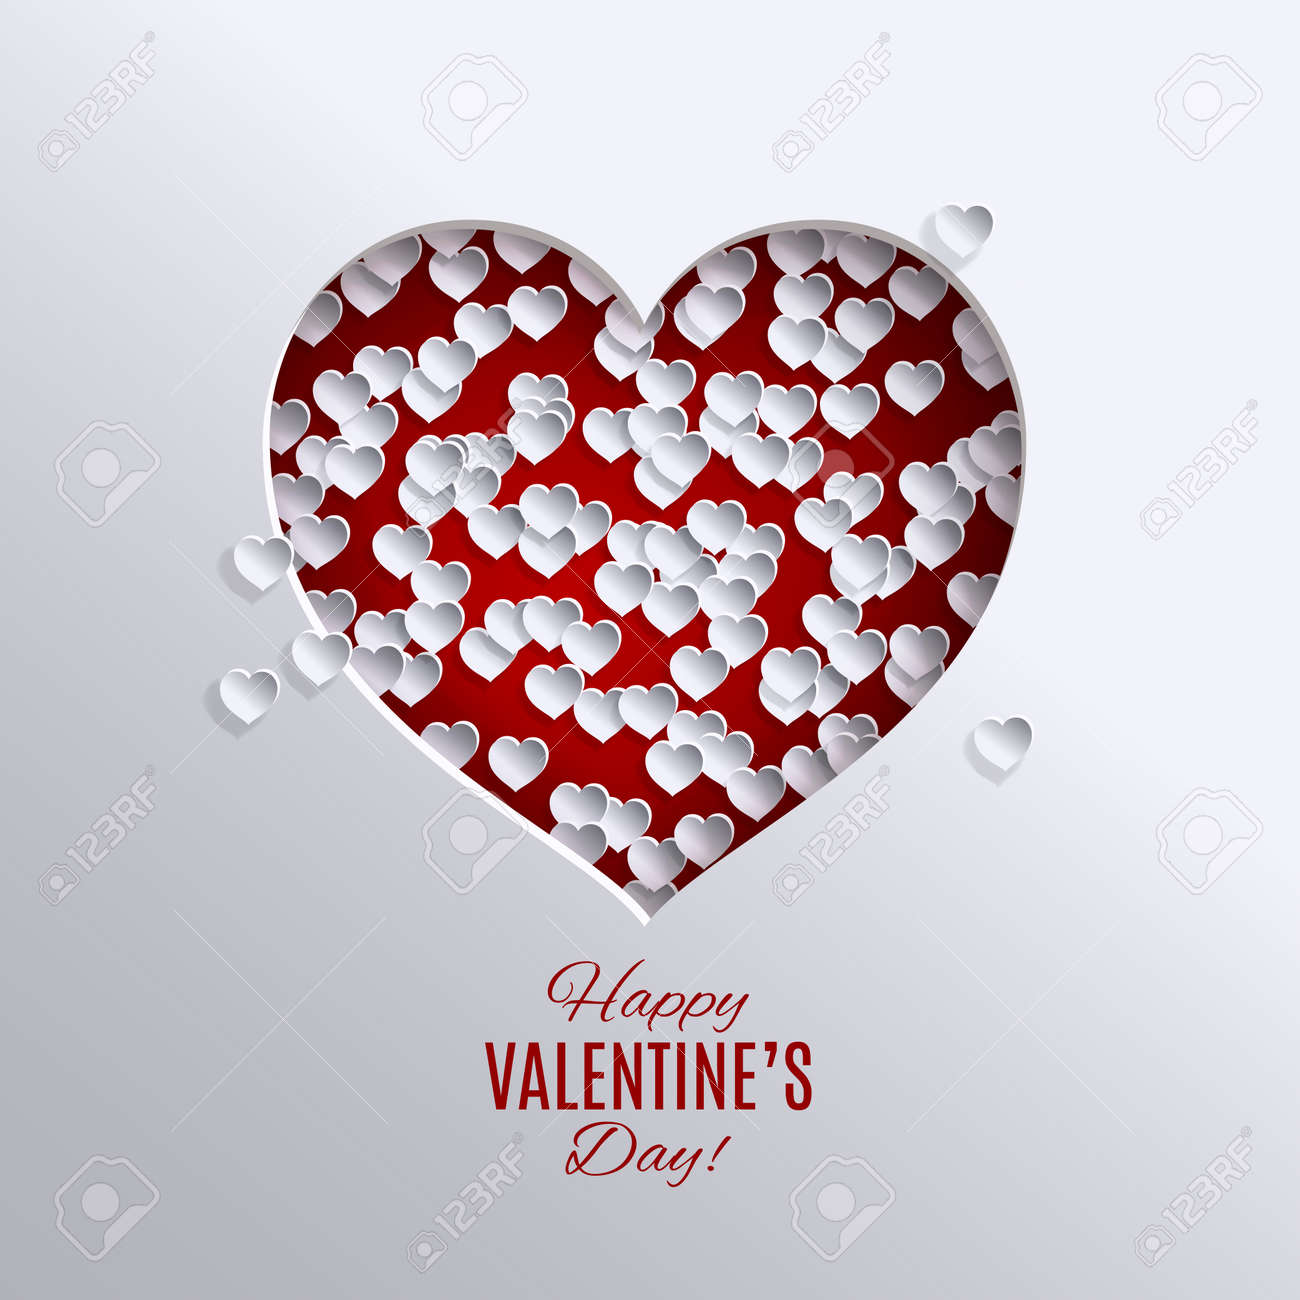 Valentines Day Holiday Design Paper Cut Red Heart Vector